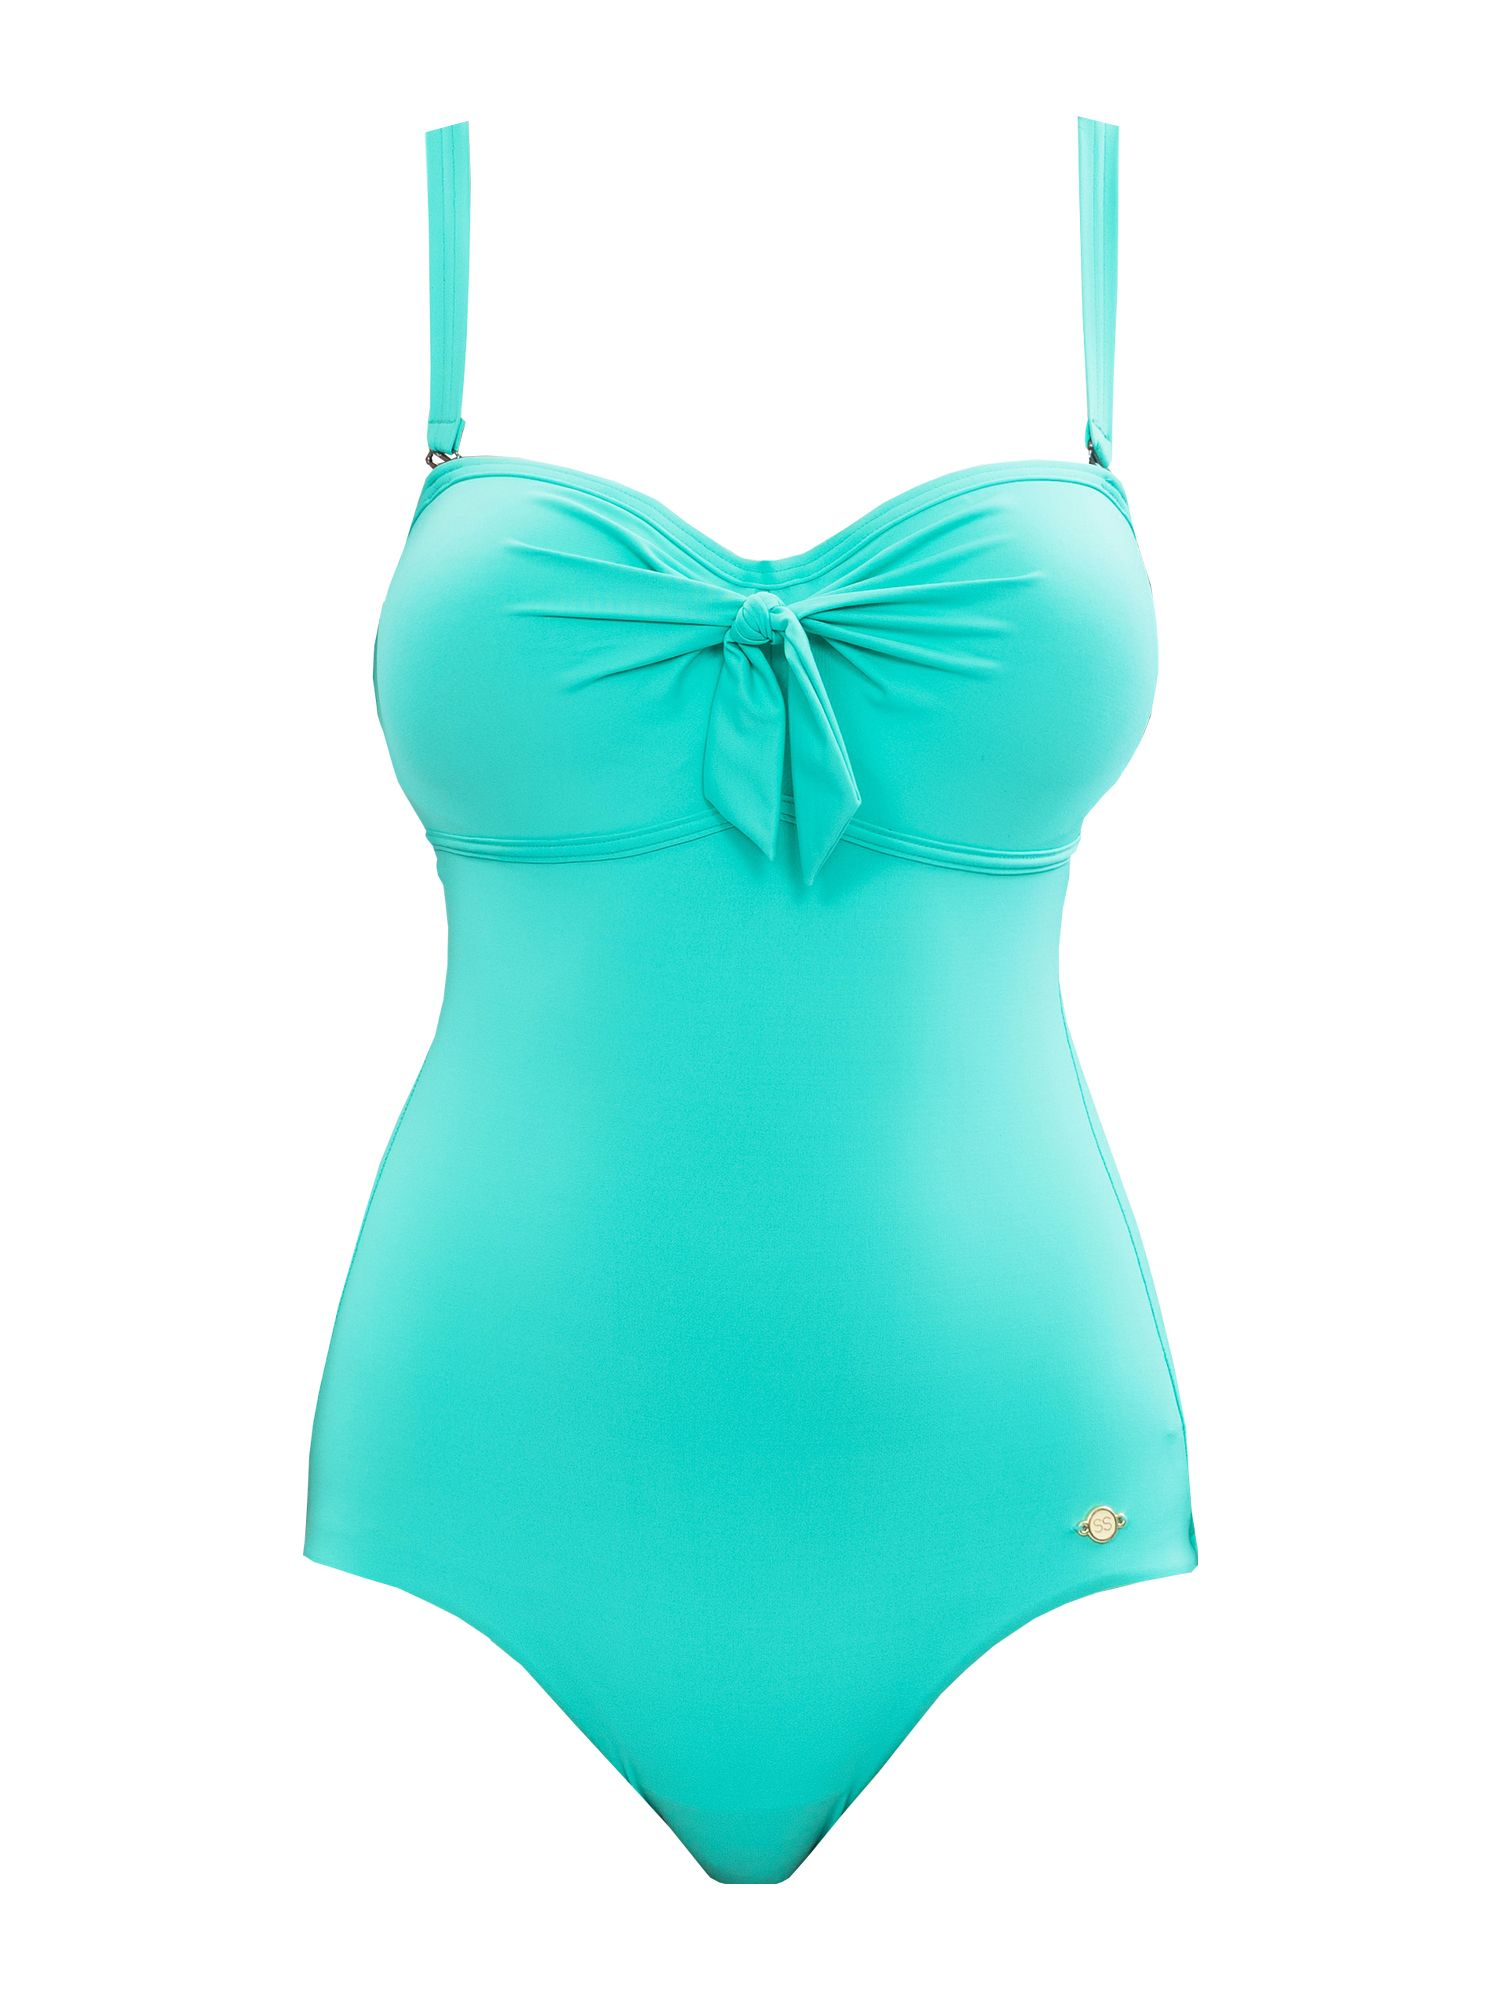 SUNSEEKER Solid black cup sized swimsuit, Green